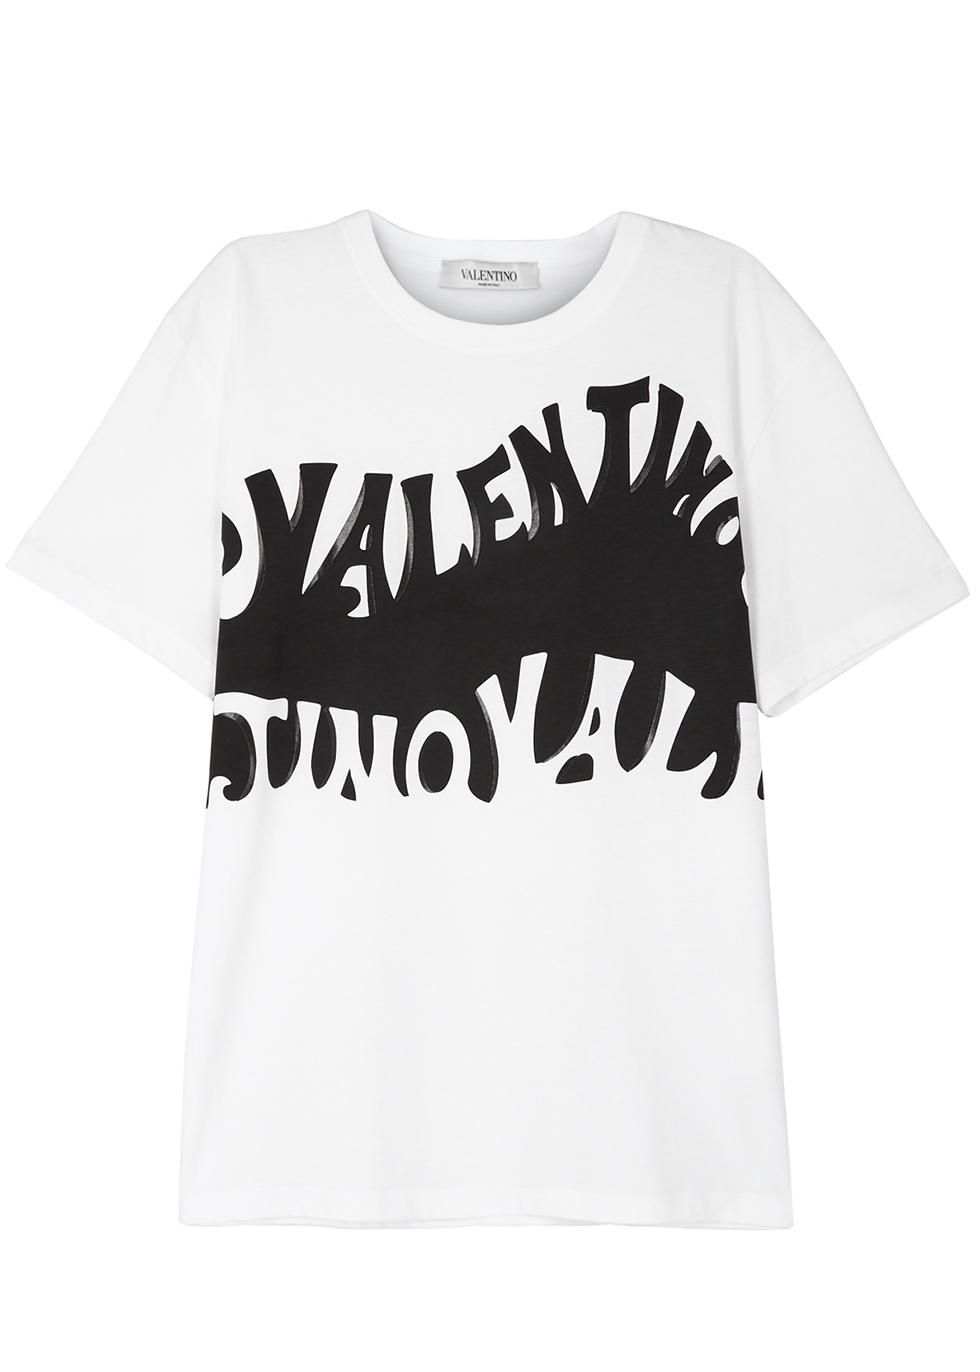 Logo Printed Jersey T-Shirt, White And Black